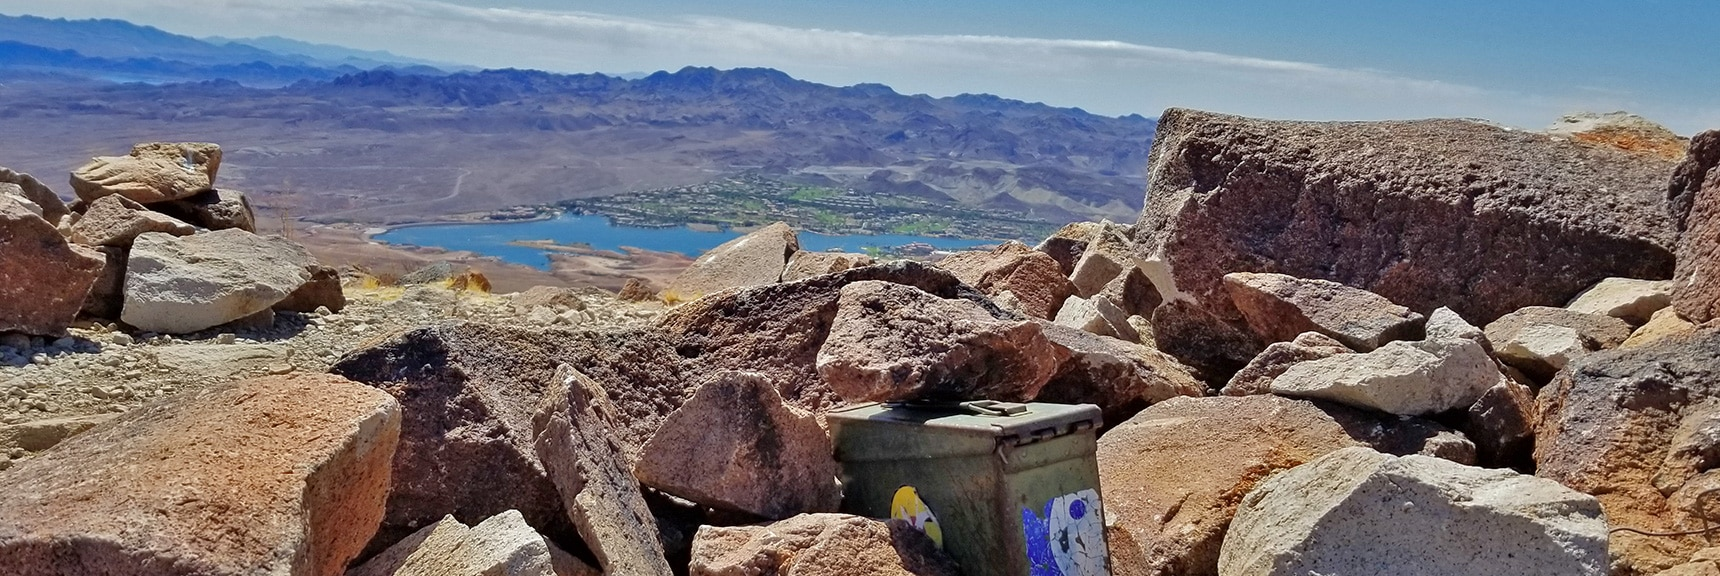 Summit Box on Lava Butte. Lake Las Vegas in Background | Lava Butte | Lake Mead National Recreation Area, Nevada